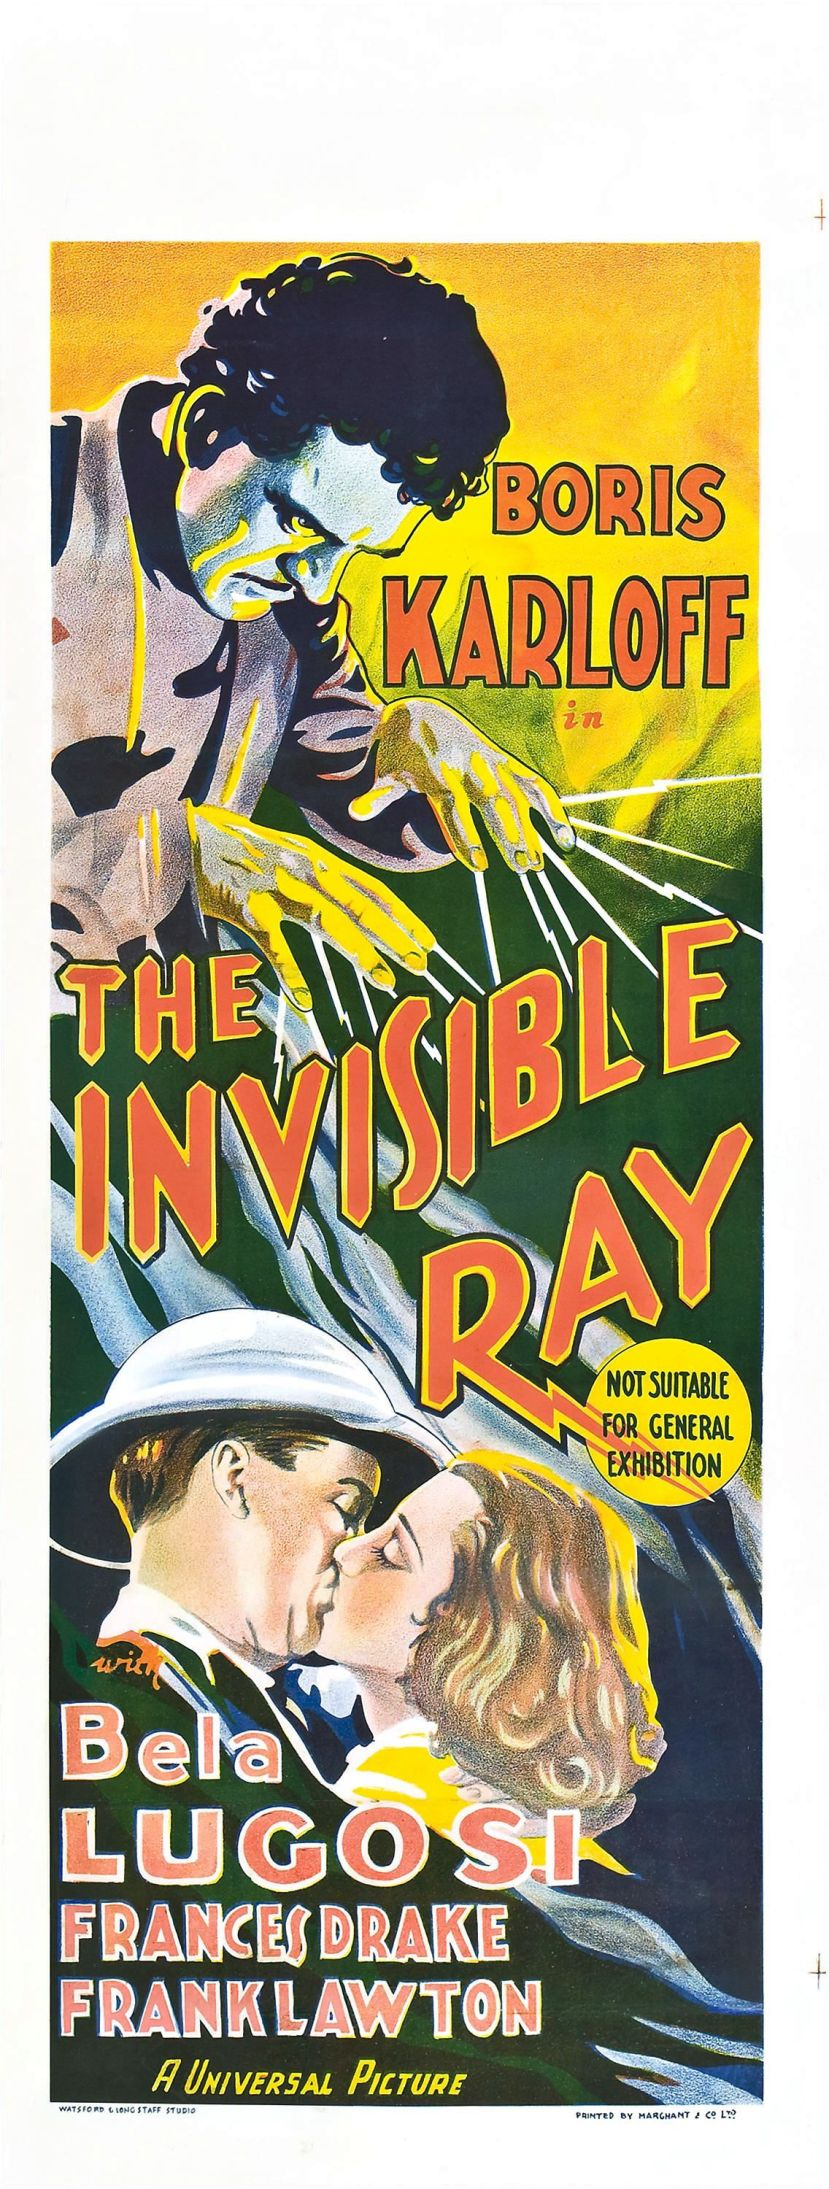 The Invisible Ray 02